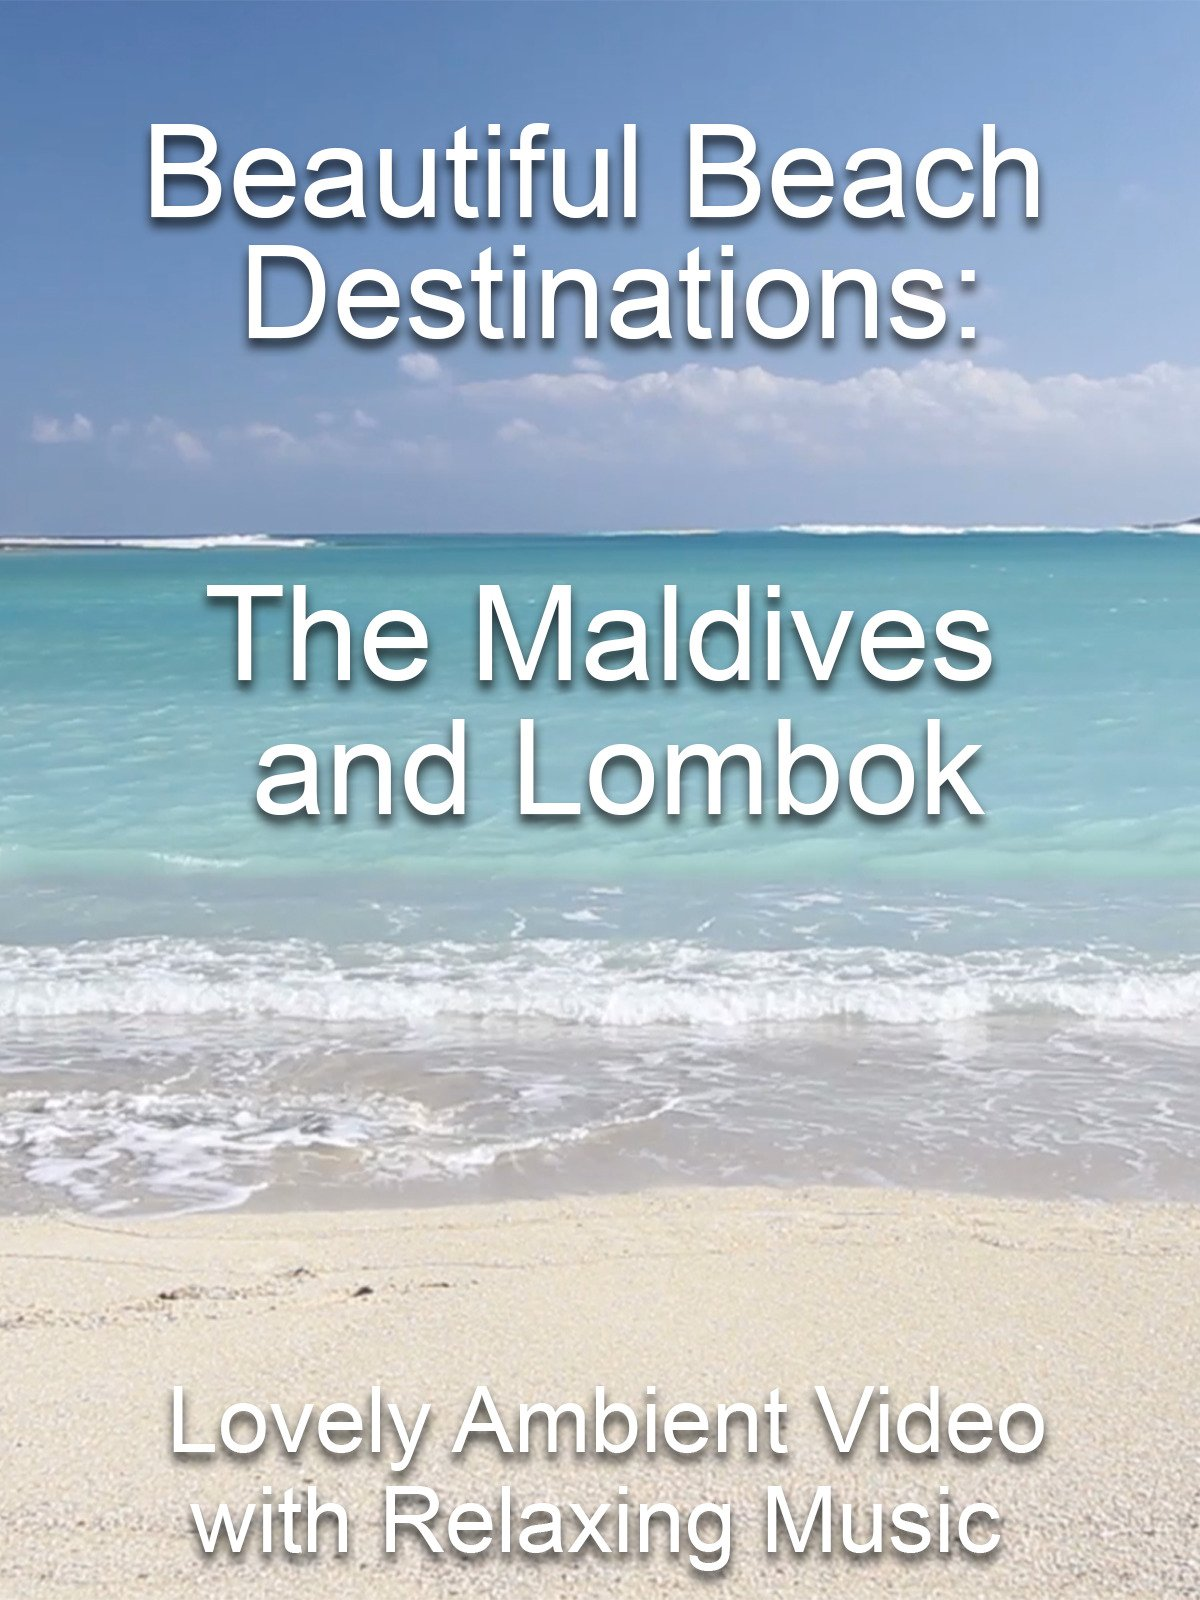 Beautiful Beach Destinations: The Maldives and Lombok Lovely Ambient Video with Relaxing Music